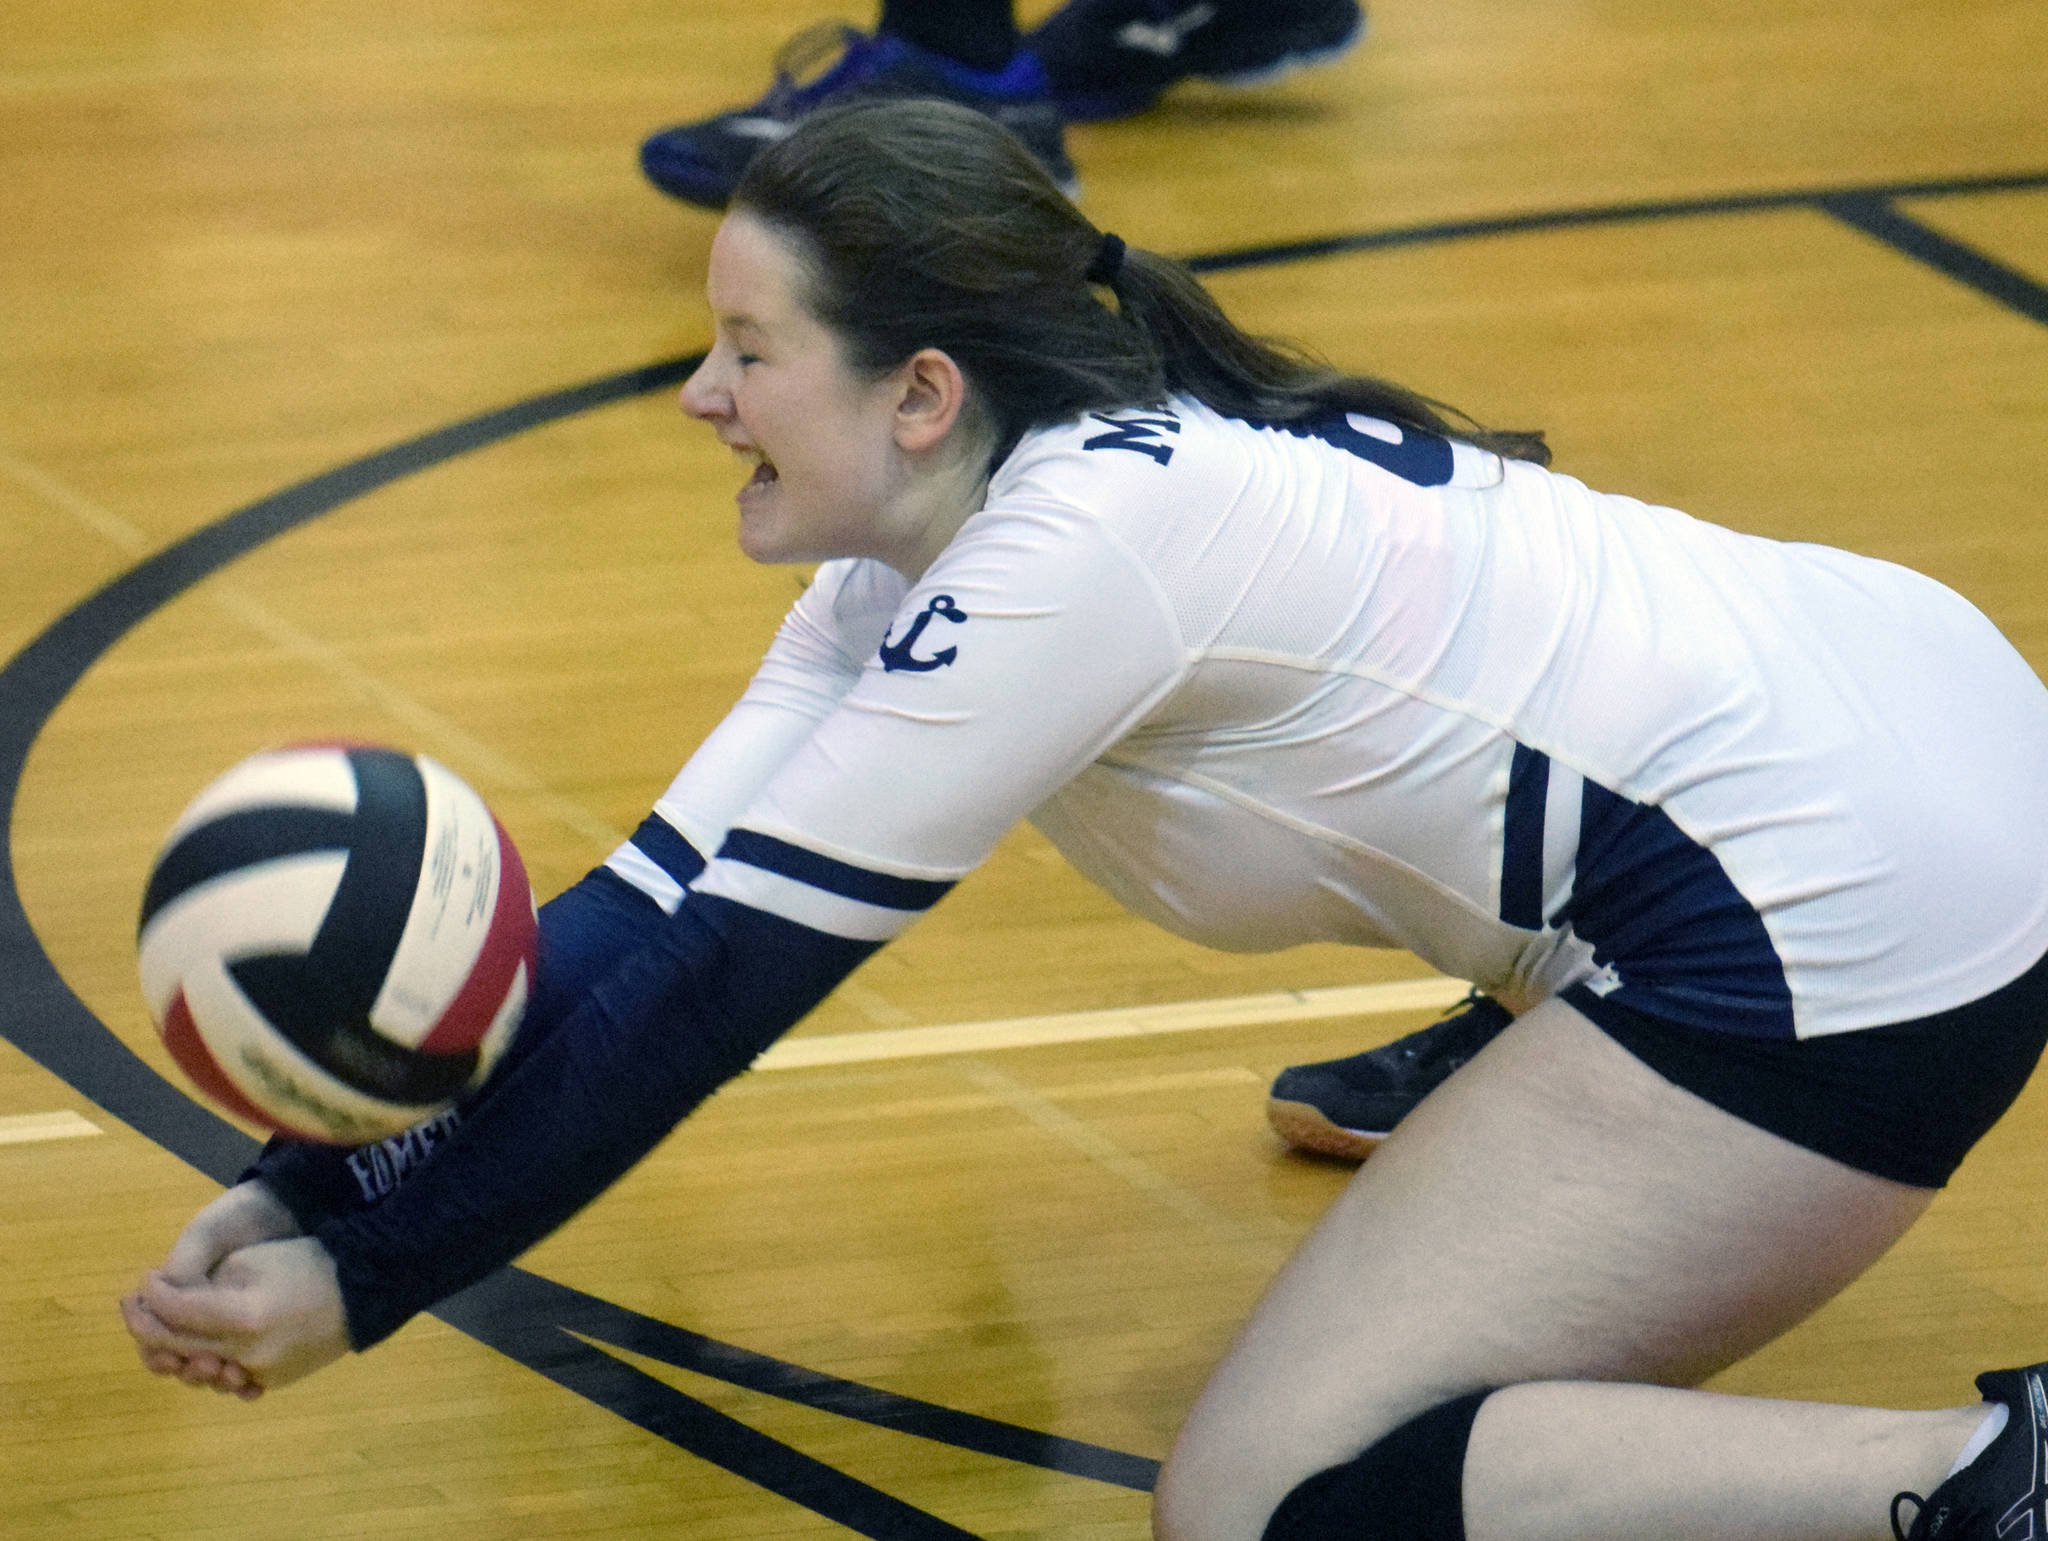 Homer's Kitri Classen digs up a ball against Kenai Central on Tuesday, Sept. 10, 2019, at Kenai Central High School in Kenai, Alaska. (Photo by Jeff Helminiak/Peninsula Clarion)